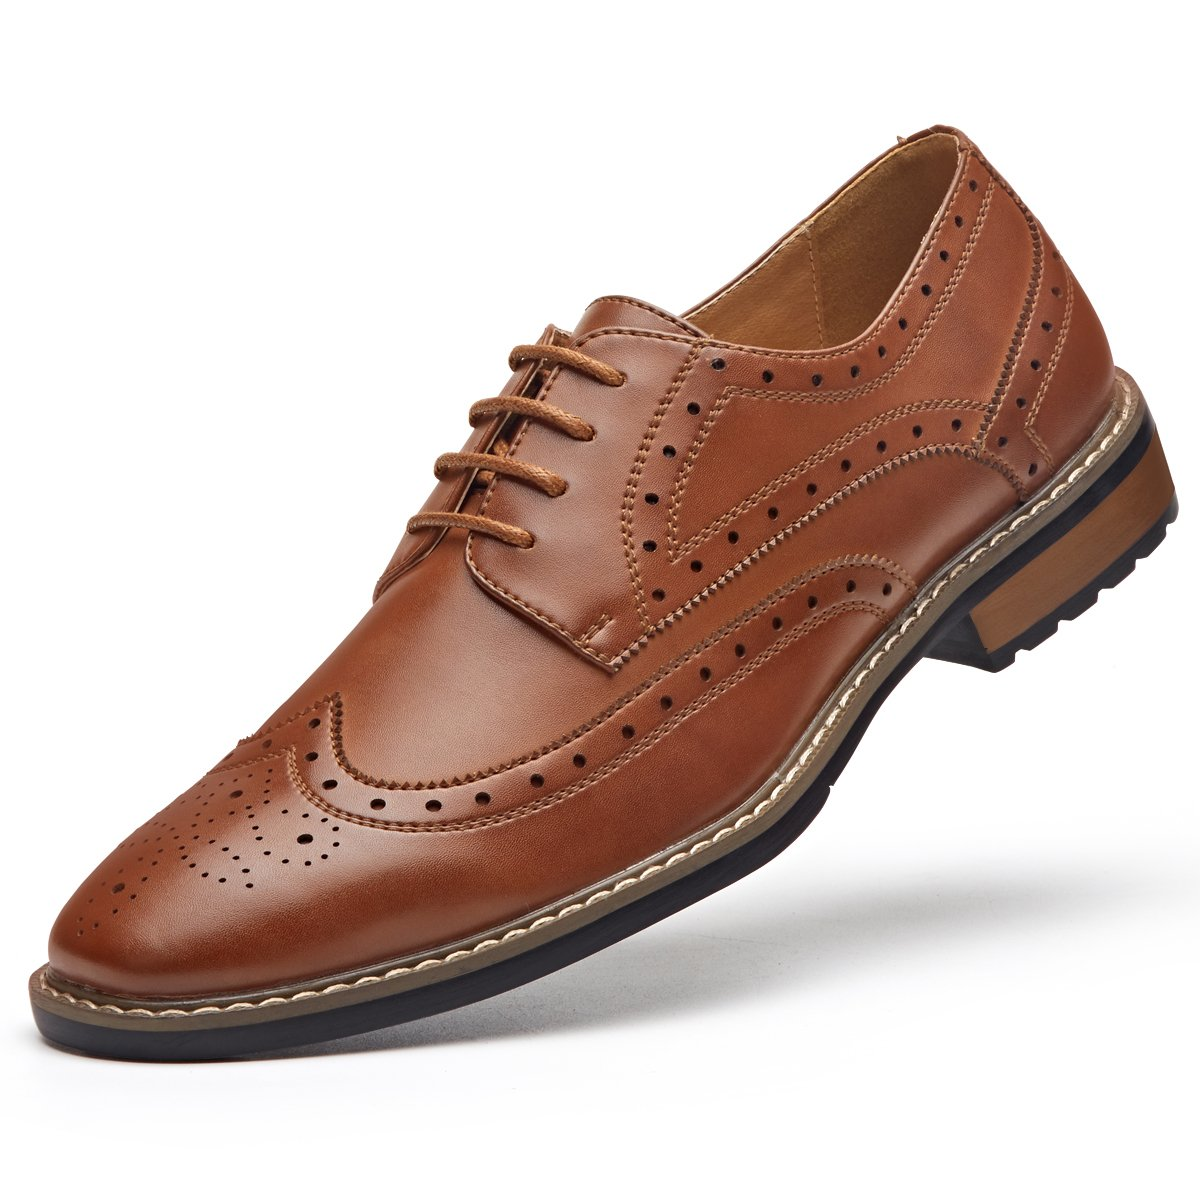 Men's Leather Oxford Dress Shoes Formal Wing-Tip Lace up Derby Shoes Brown 9.5